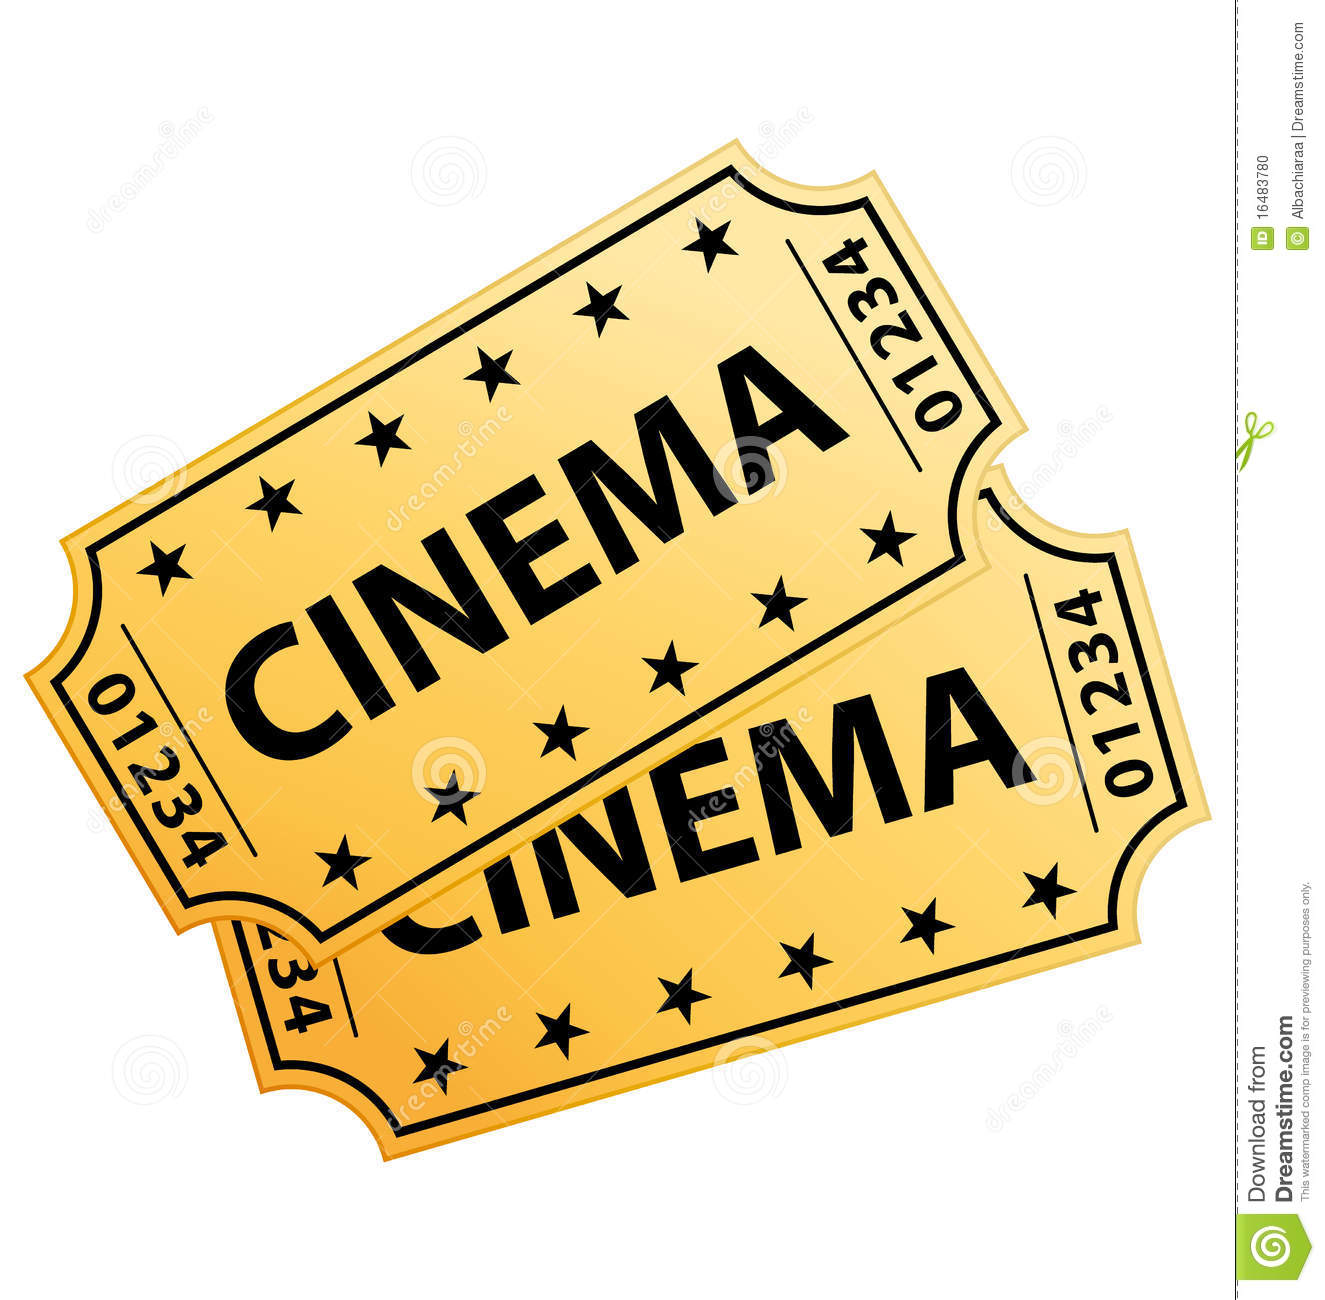 Two yellow cinema tickets isolated on white background.